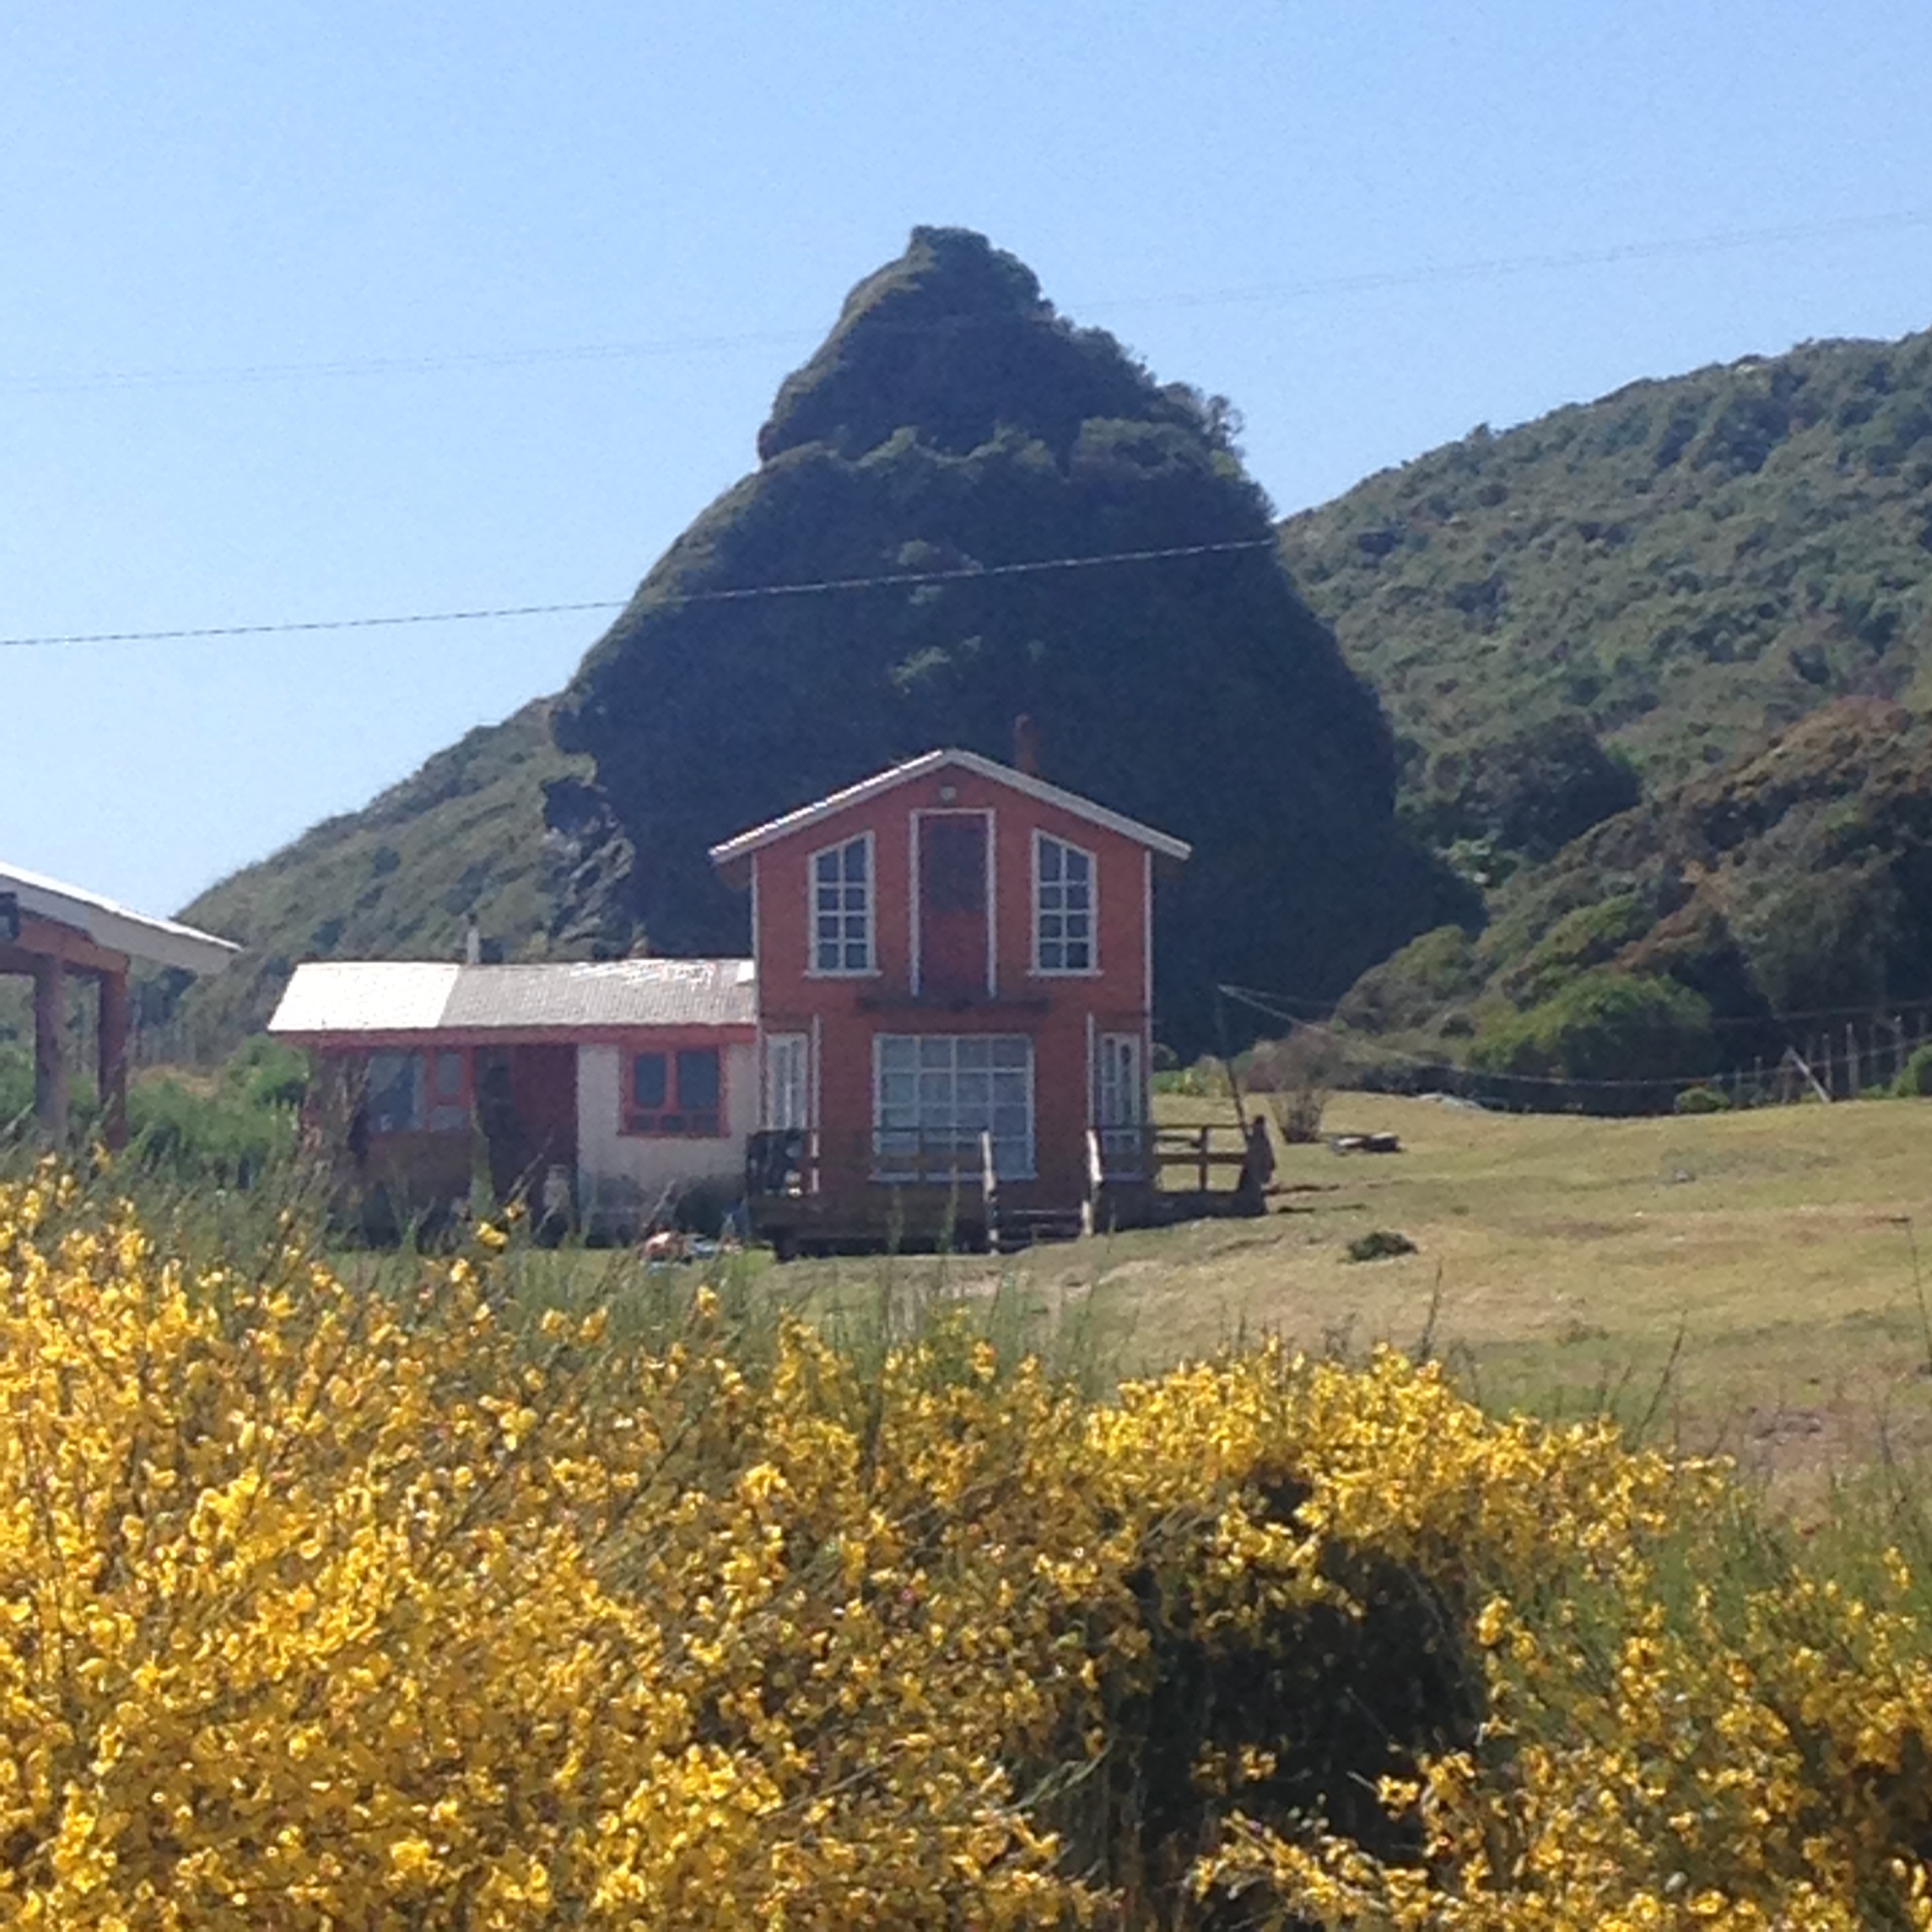 Chiloe House with hill, Inca to Inuit